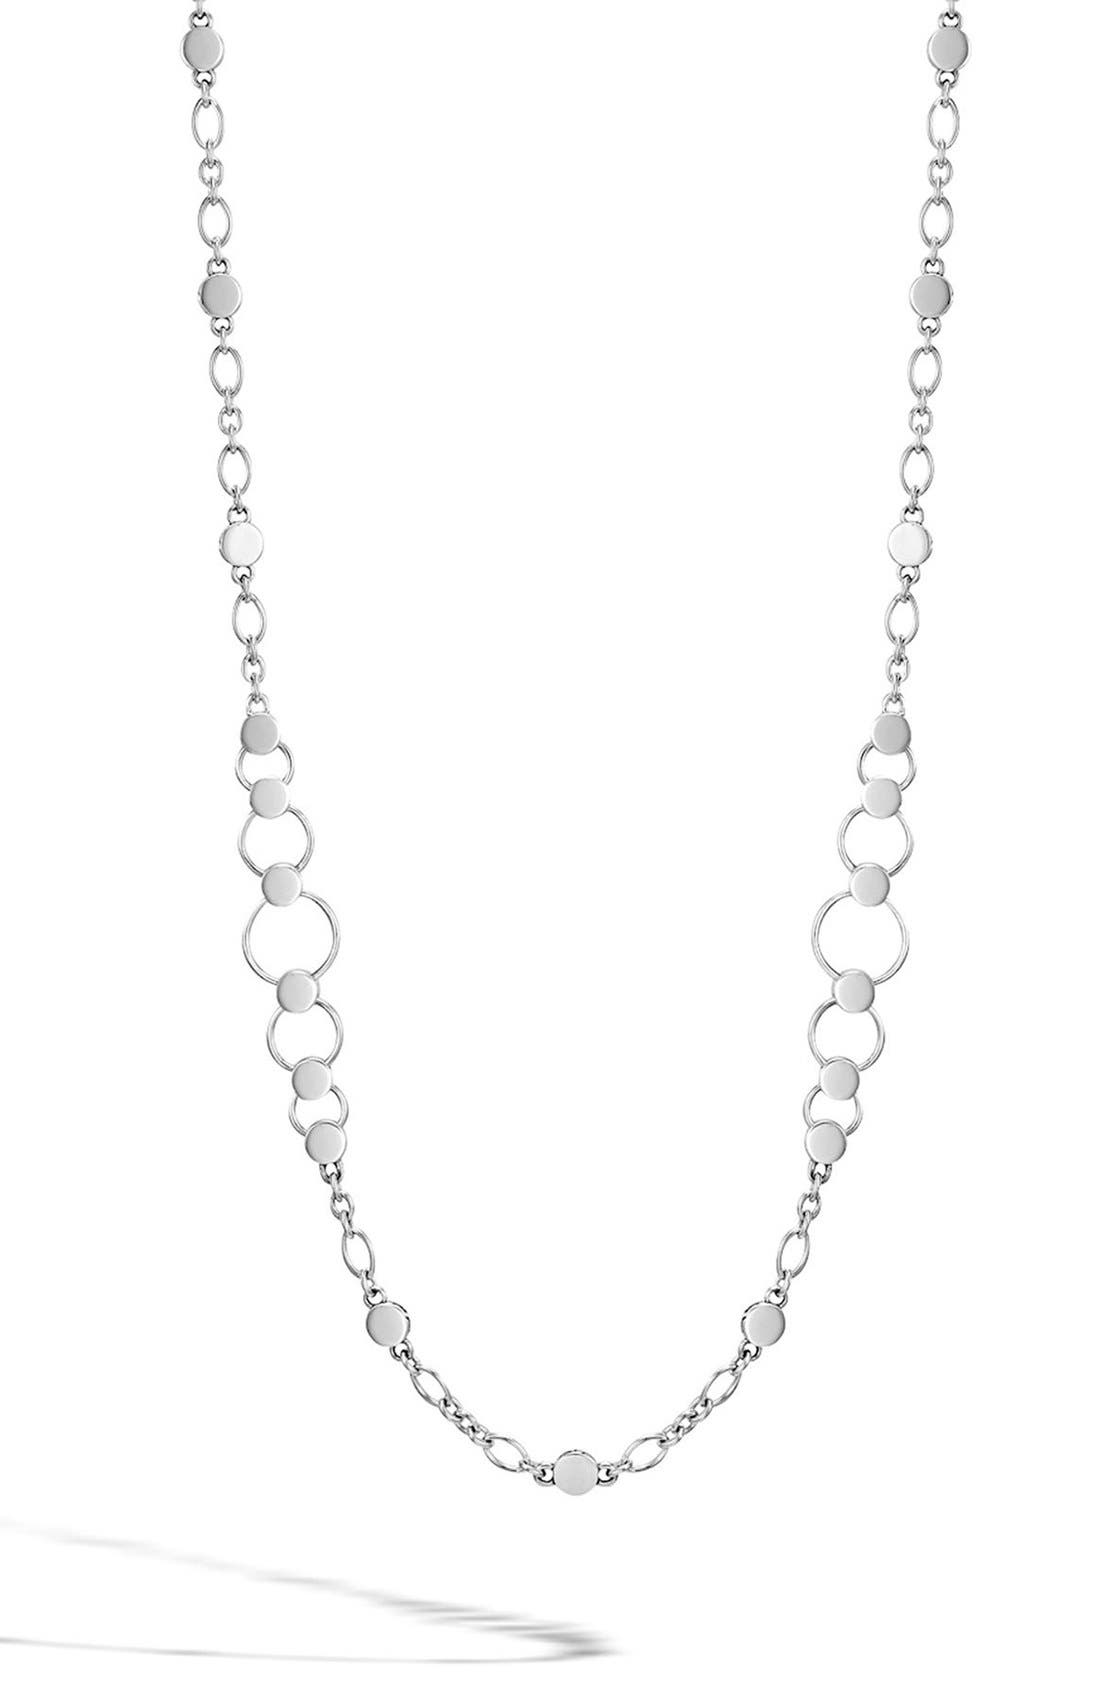 Main Image - John Hardy 'Dot' Long Link Necklace